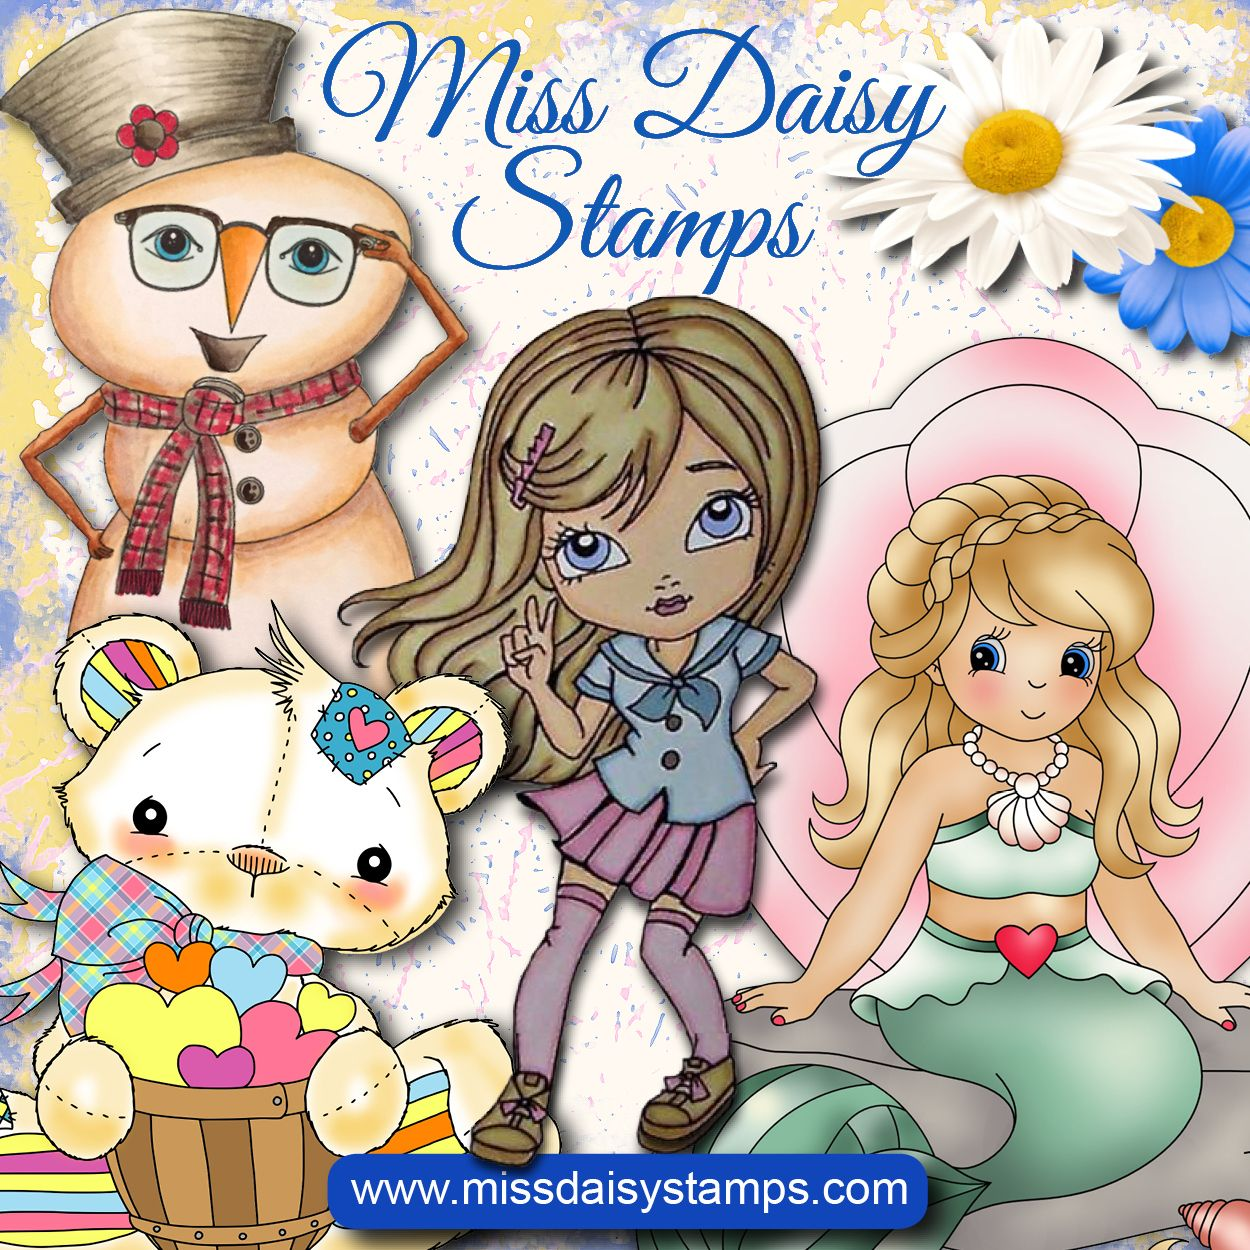 missdaisystamps